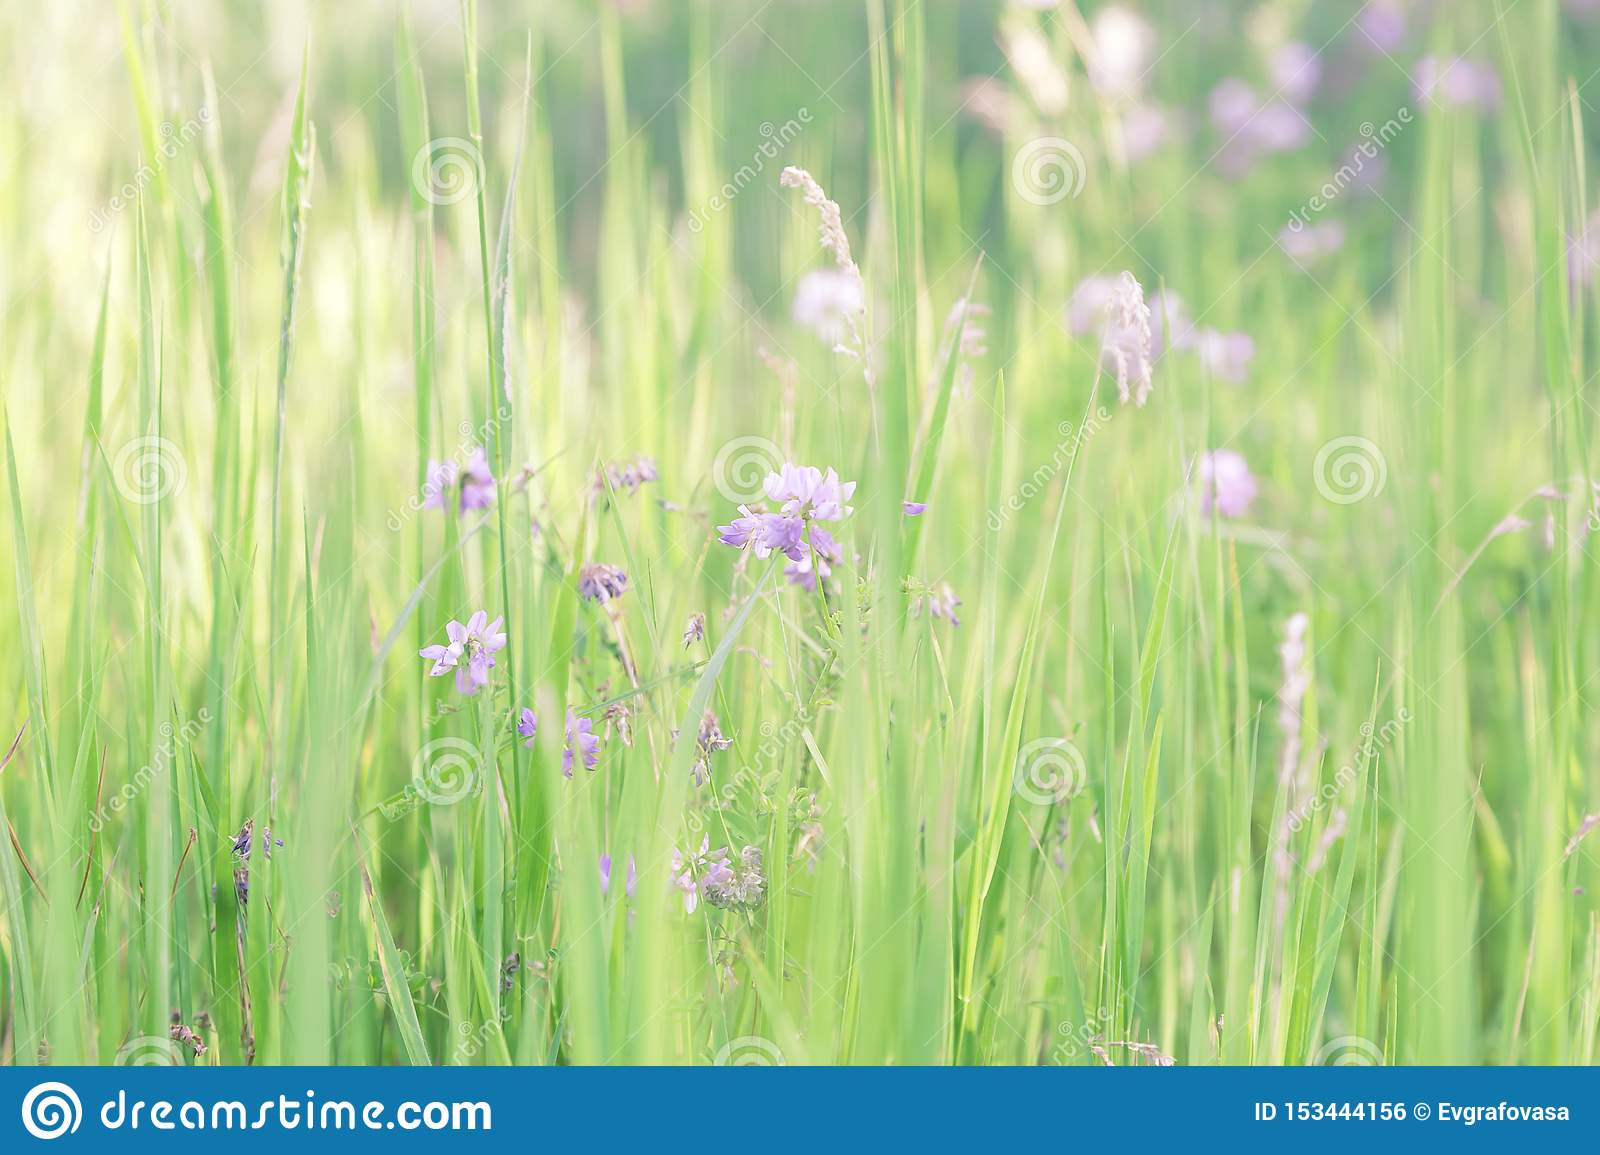 Summer sunny botanical natural floral background with green grass and blooming clover in a meadow